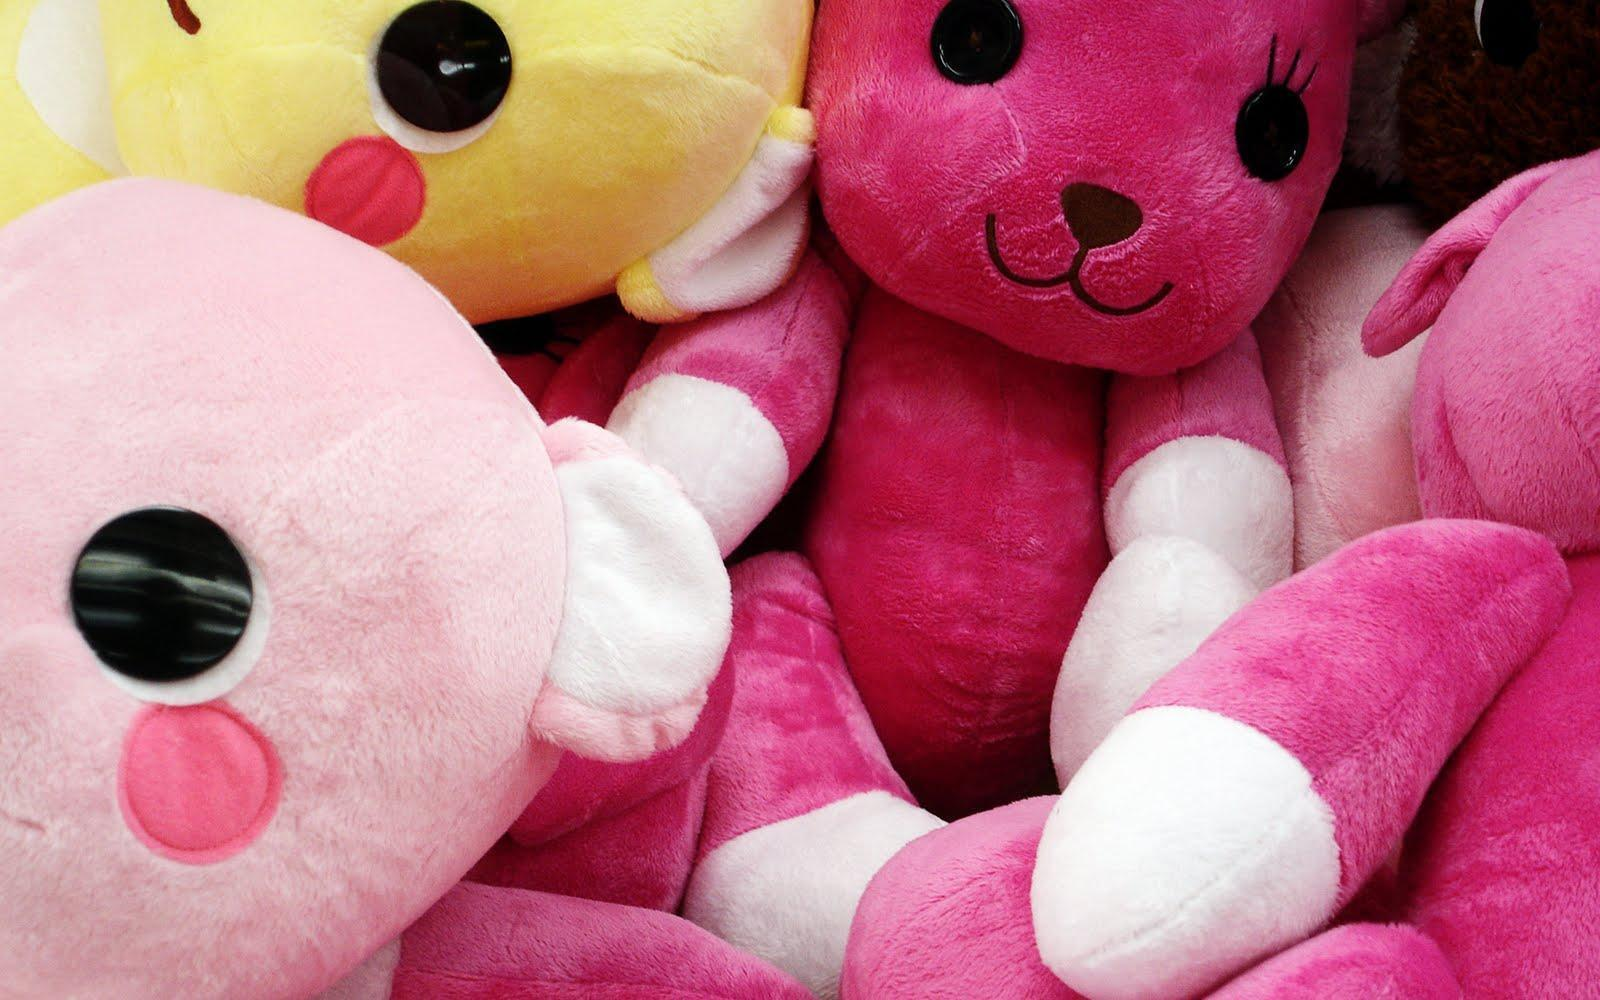 Wallpaper download cute - Wallpapers For Cute Hd Wallpapers For Laptop